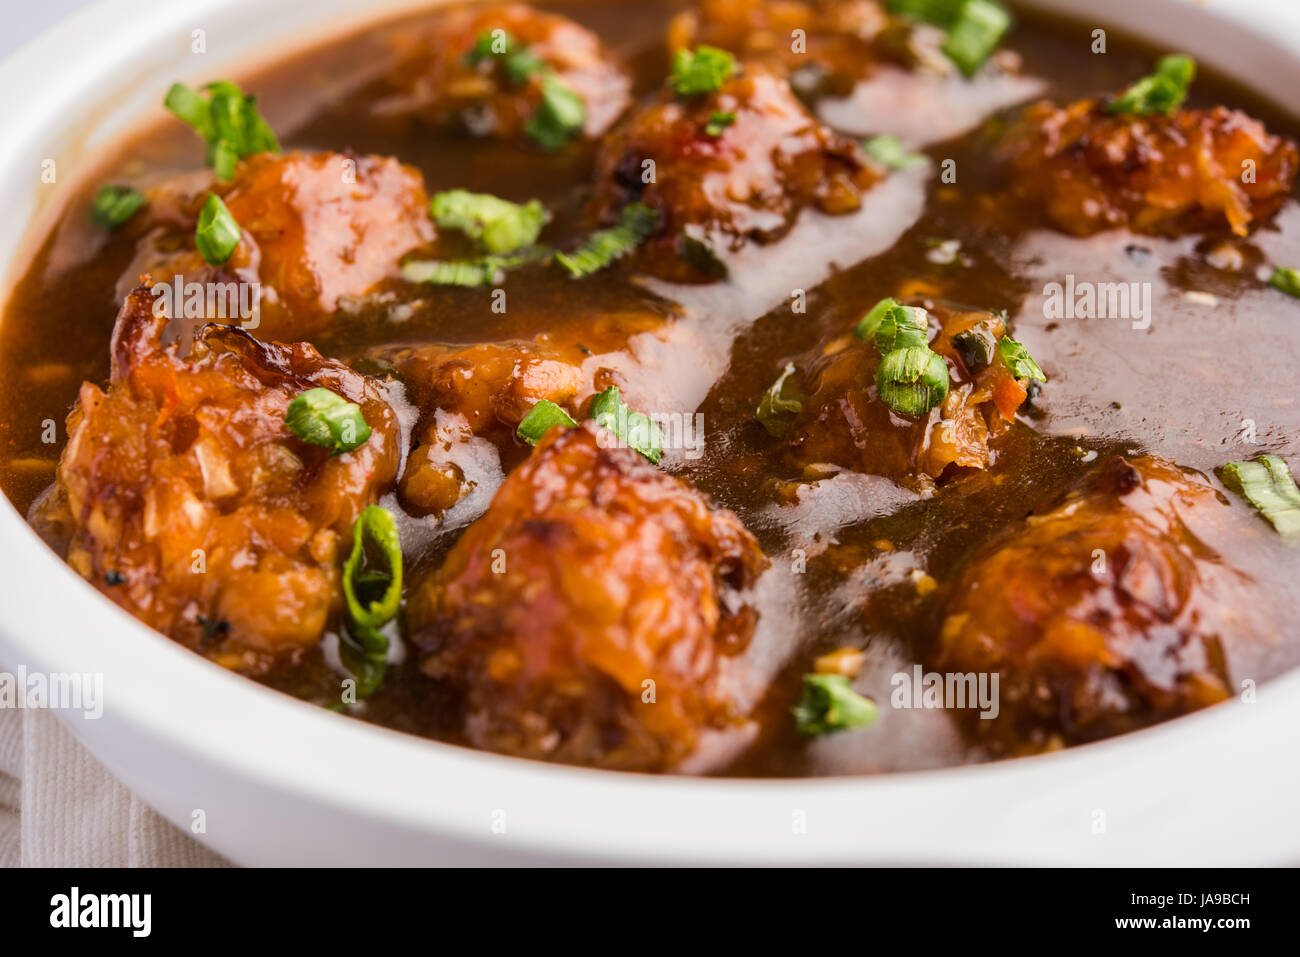 Gobi manchurian or veg manchurian dry or with gravy popular street gobi manchurian or veg manchurian dry or with gravy popular street food of india made of cauliflower florets selective focus forumfinder Gallery